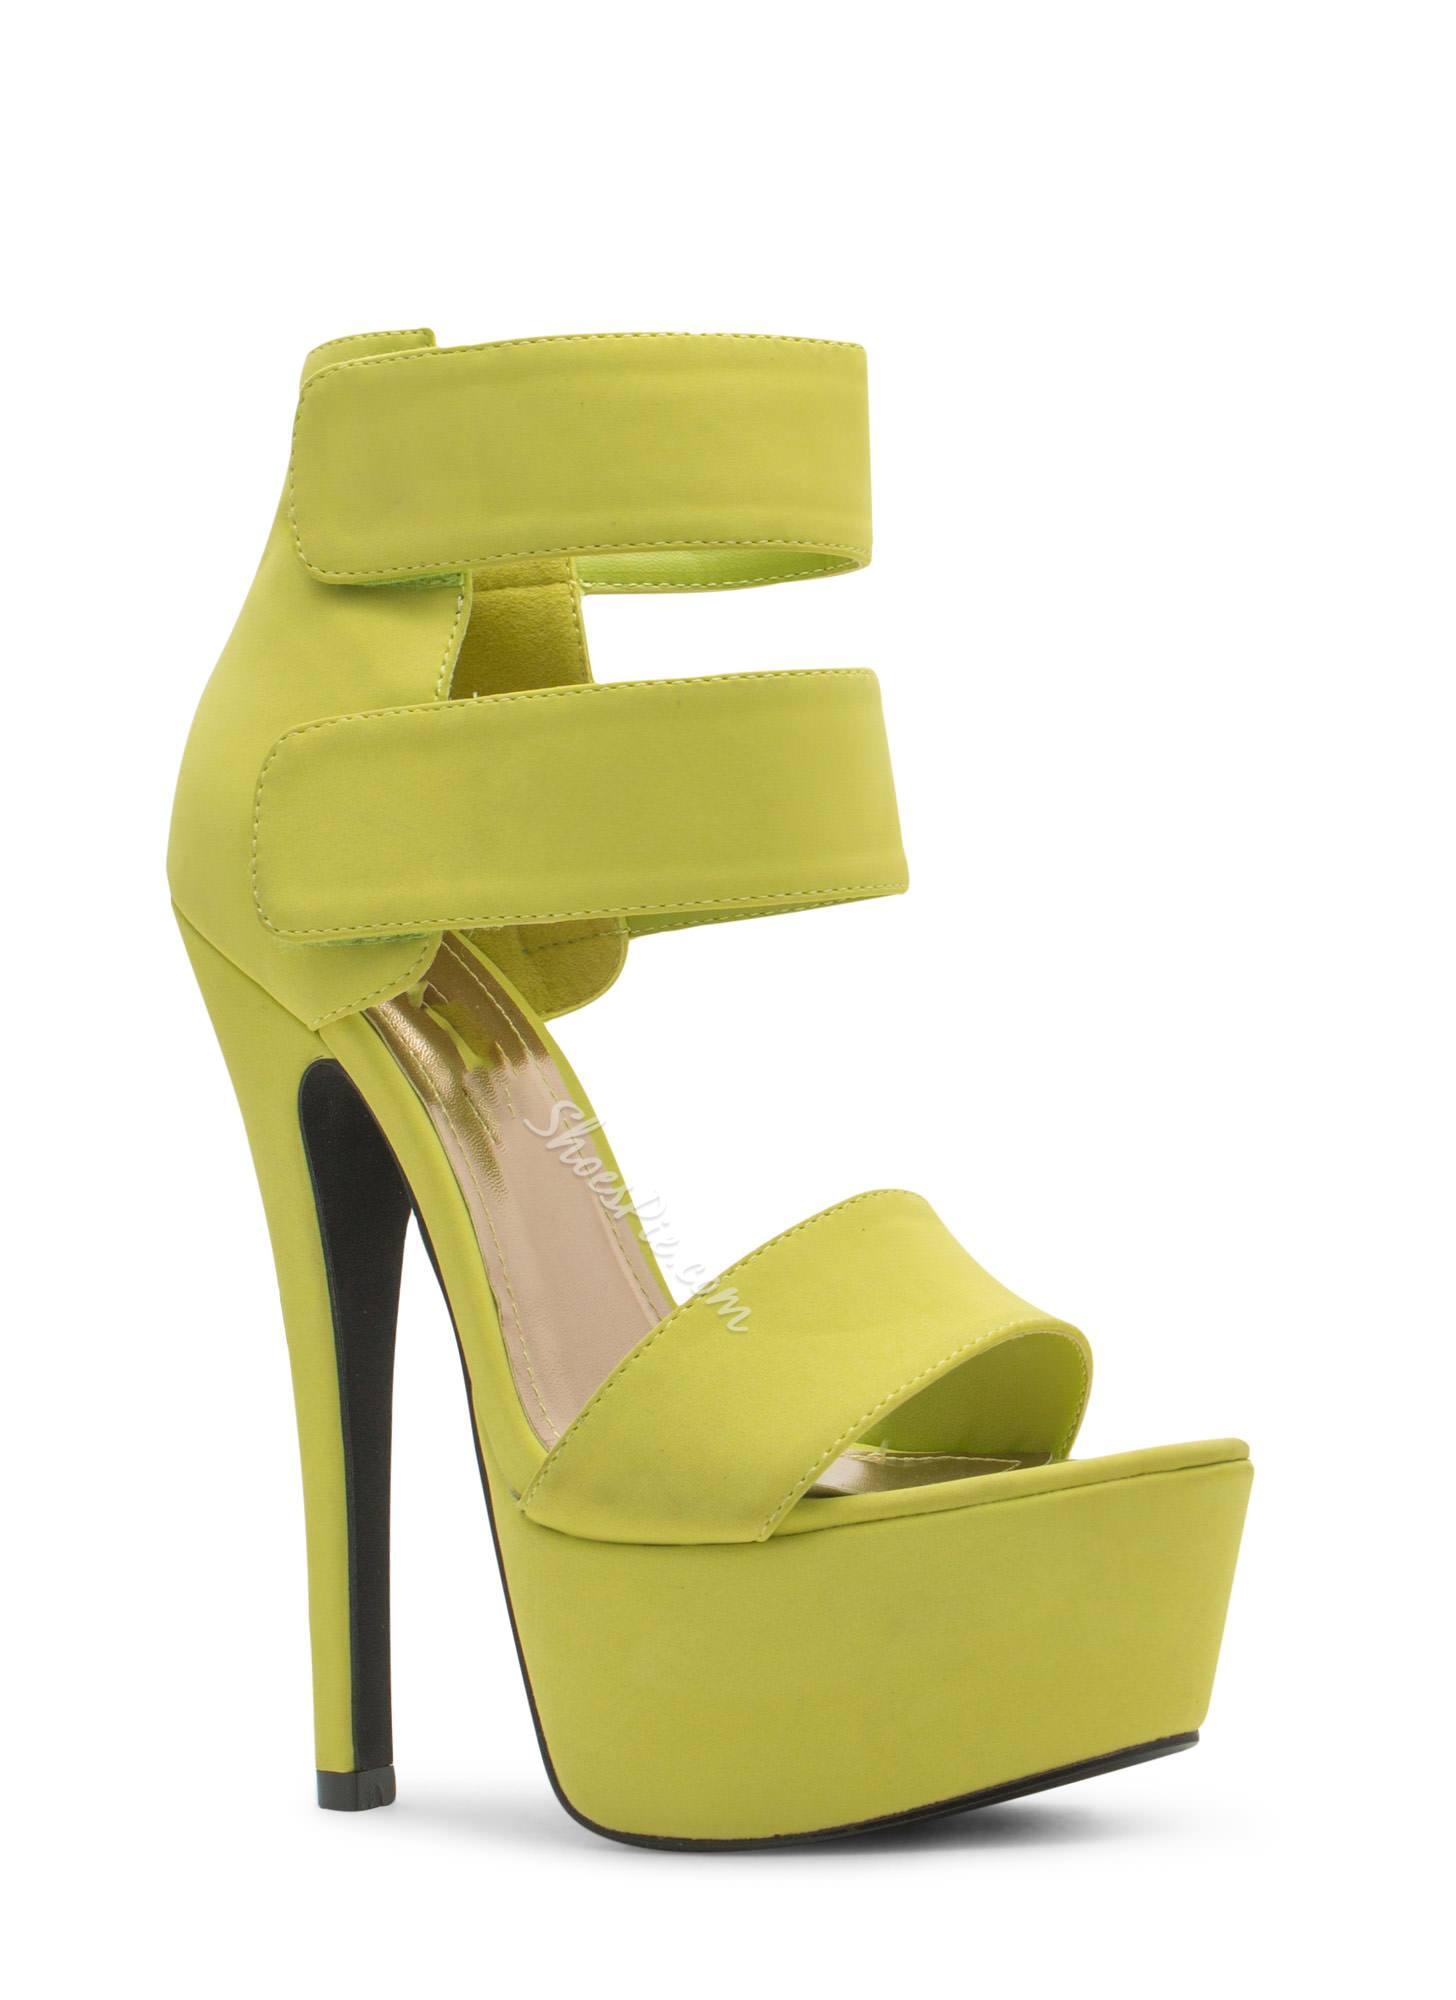 Amazing Solid Color Platform Sandals